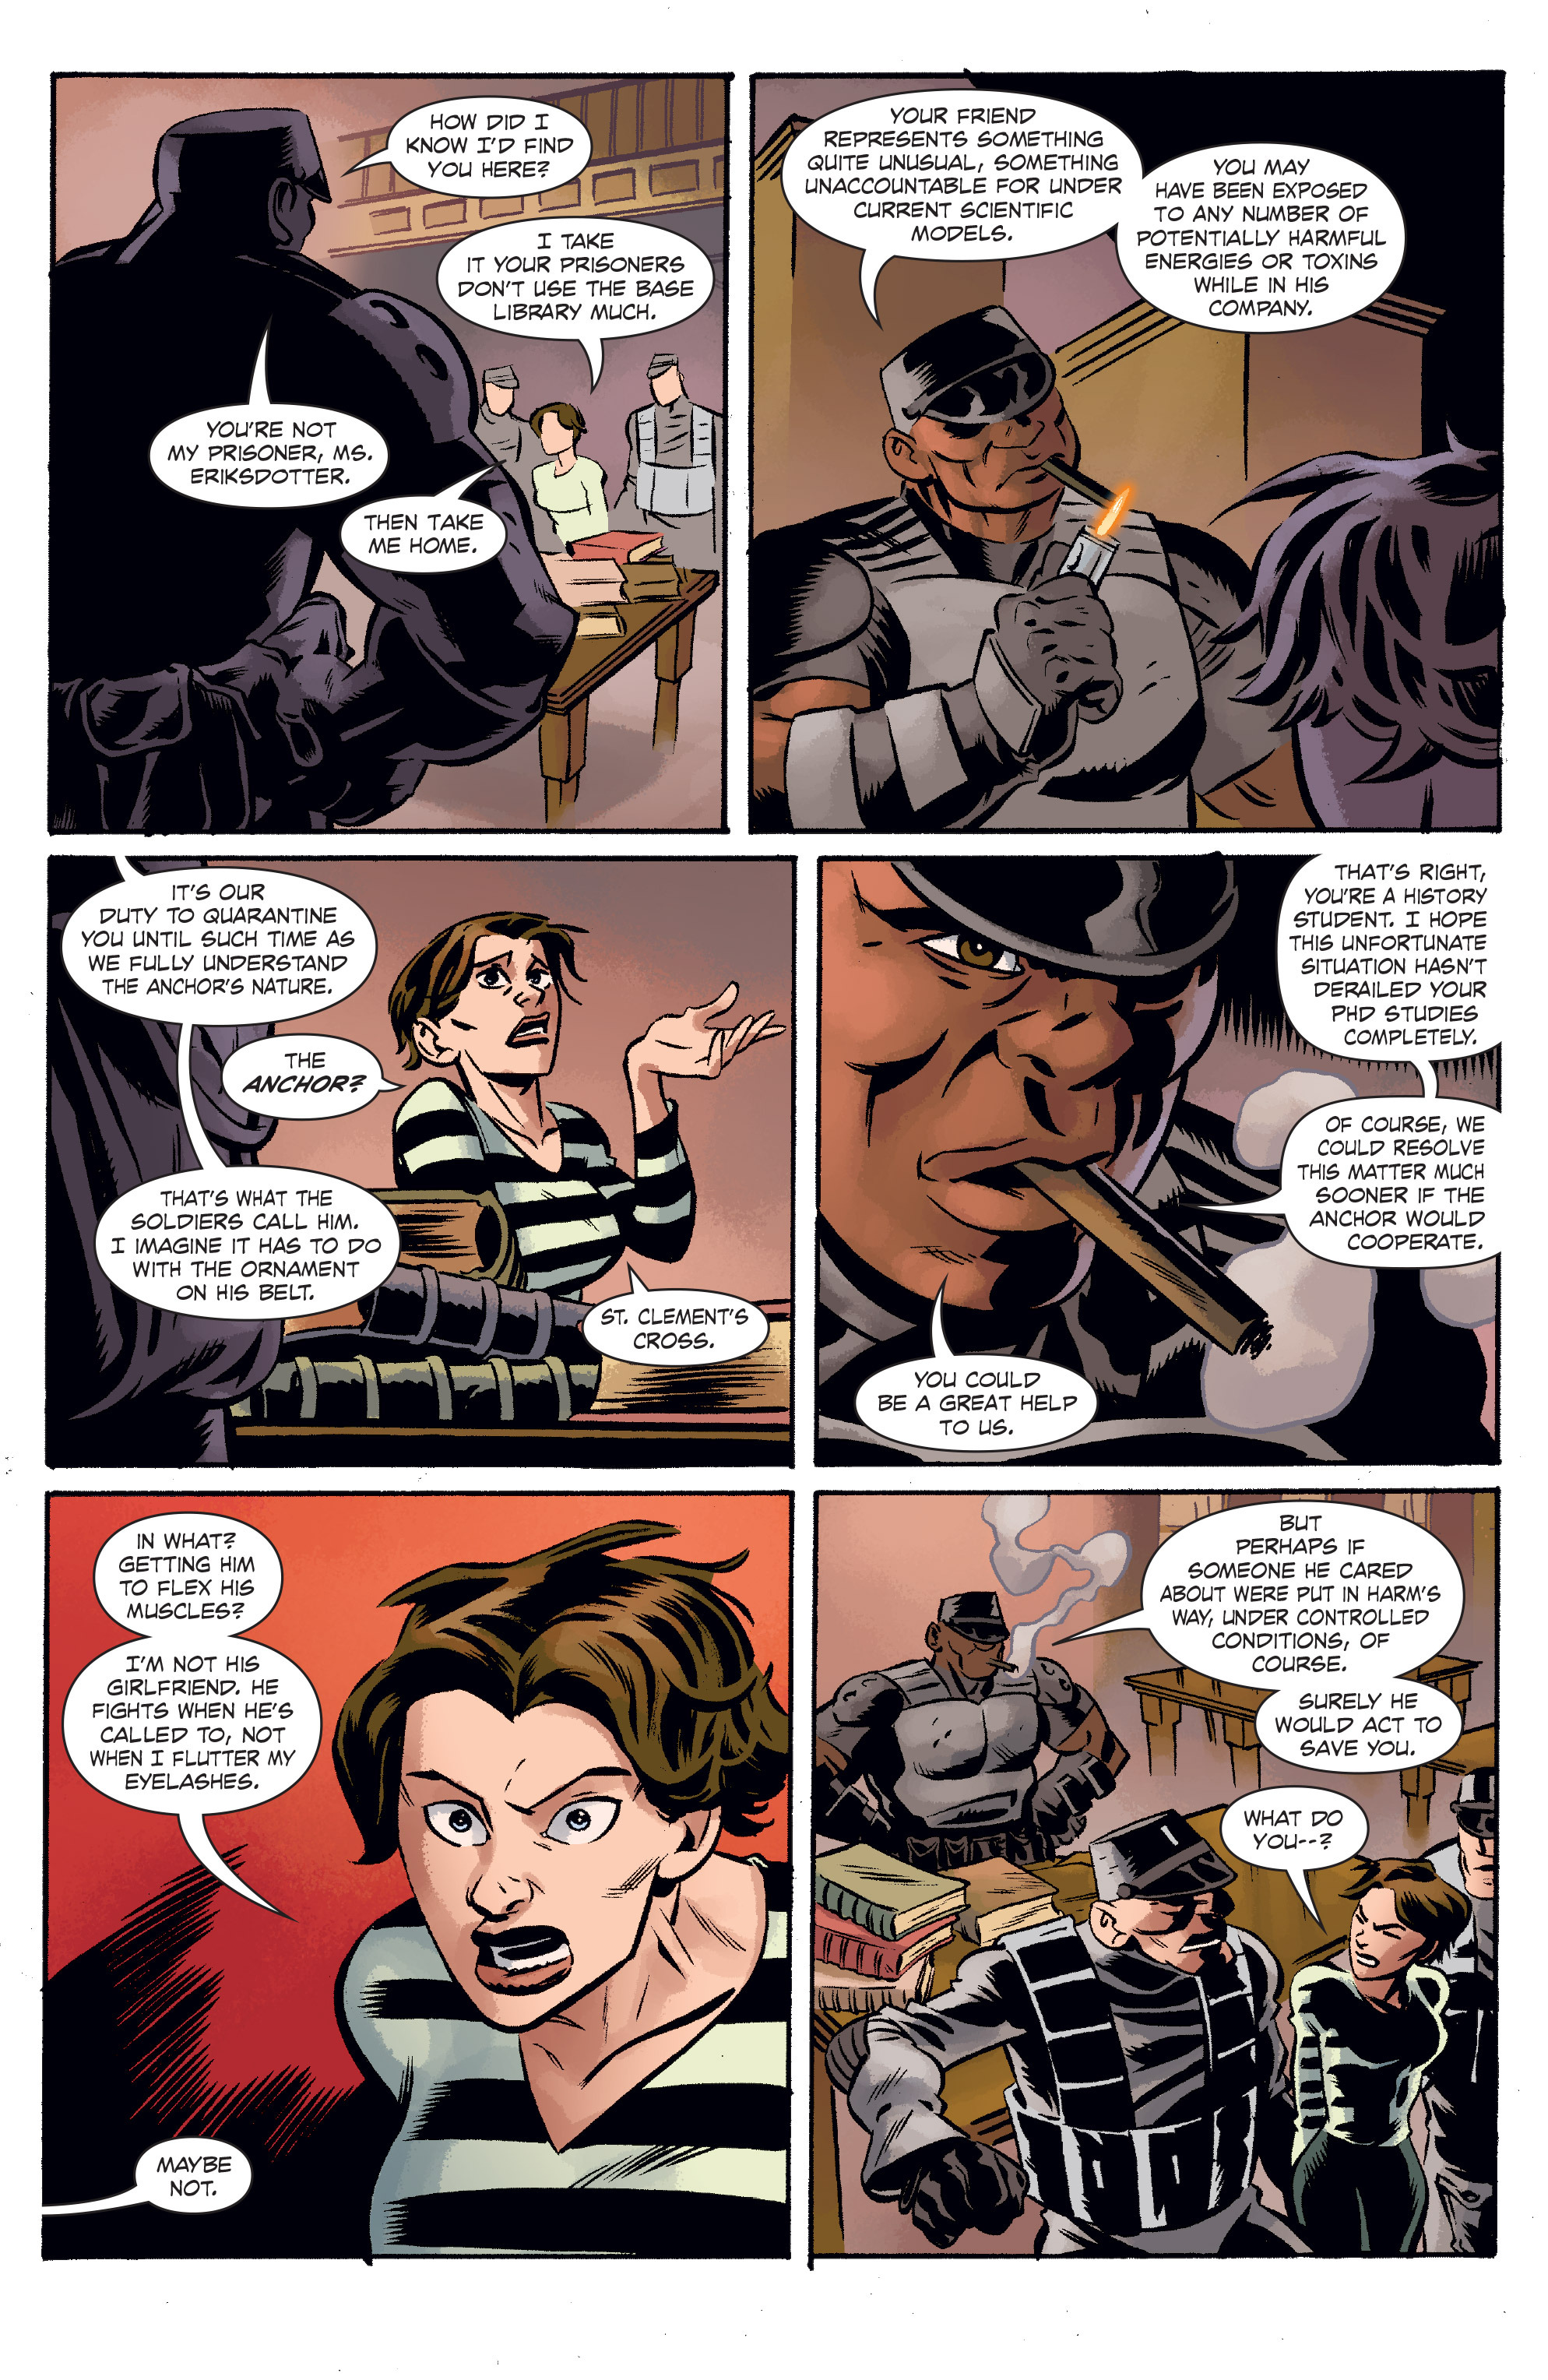 Read online The Anchor comic -  Issue # TPB 1 - 58